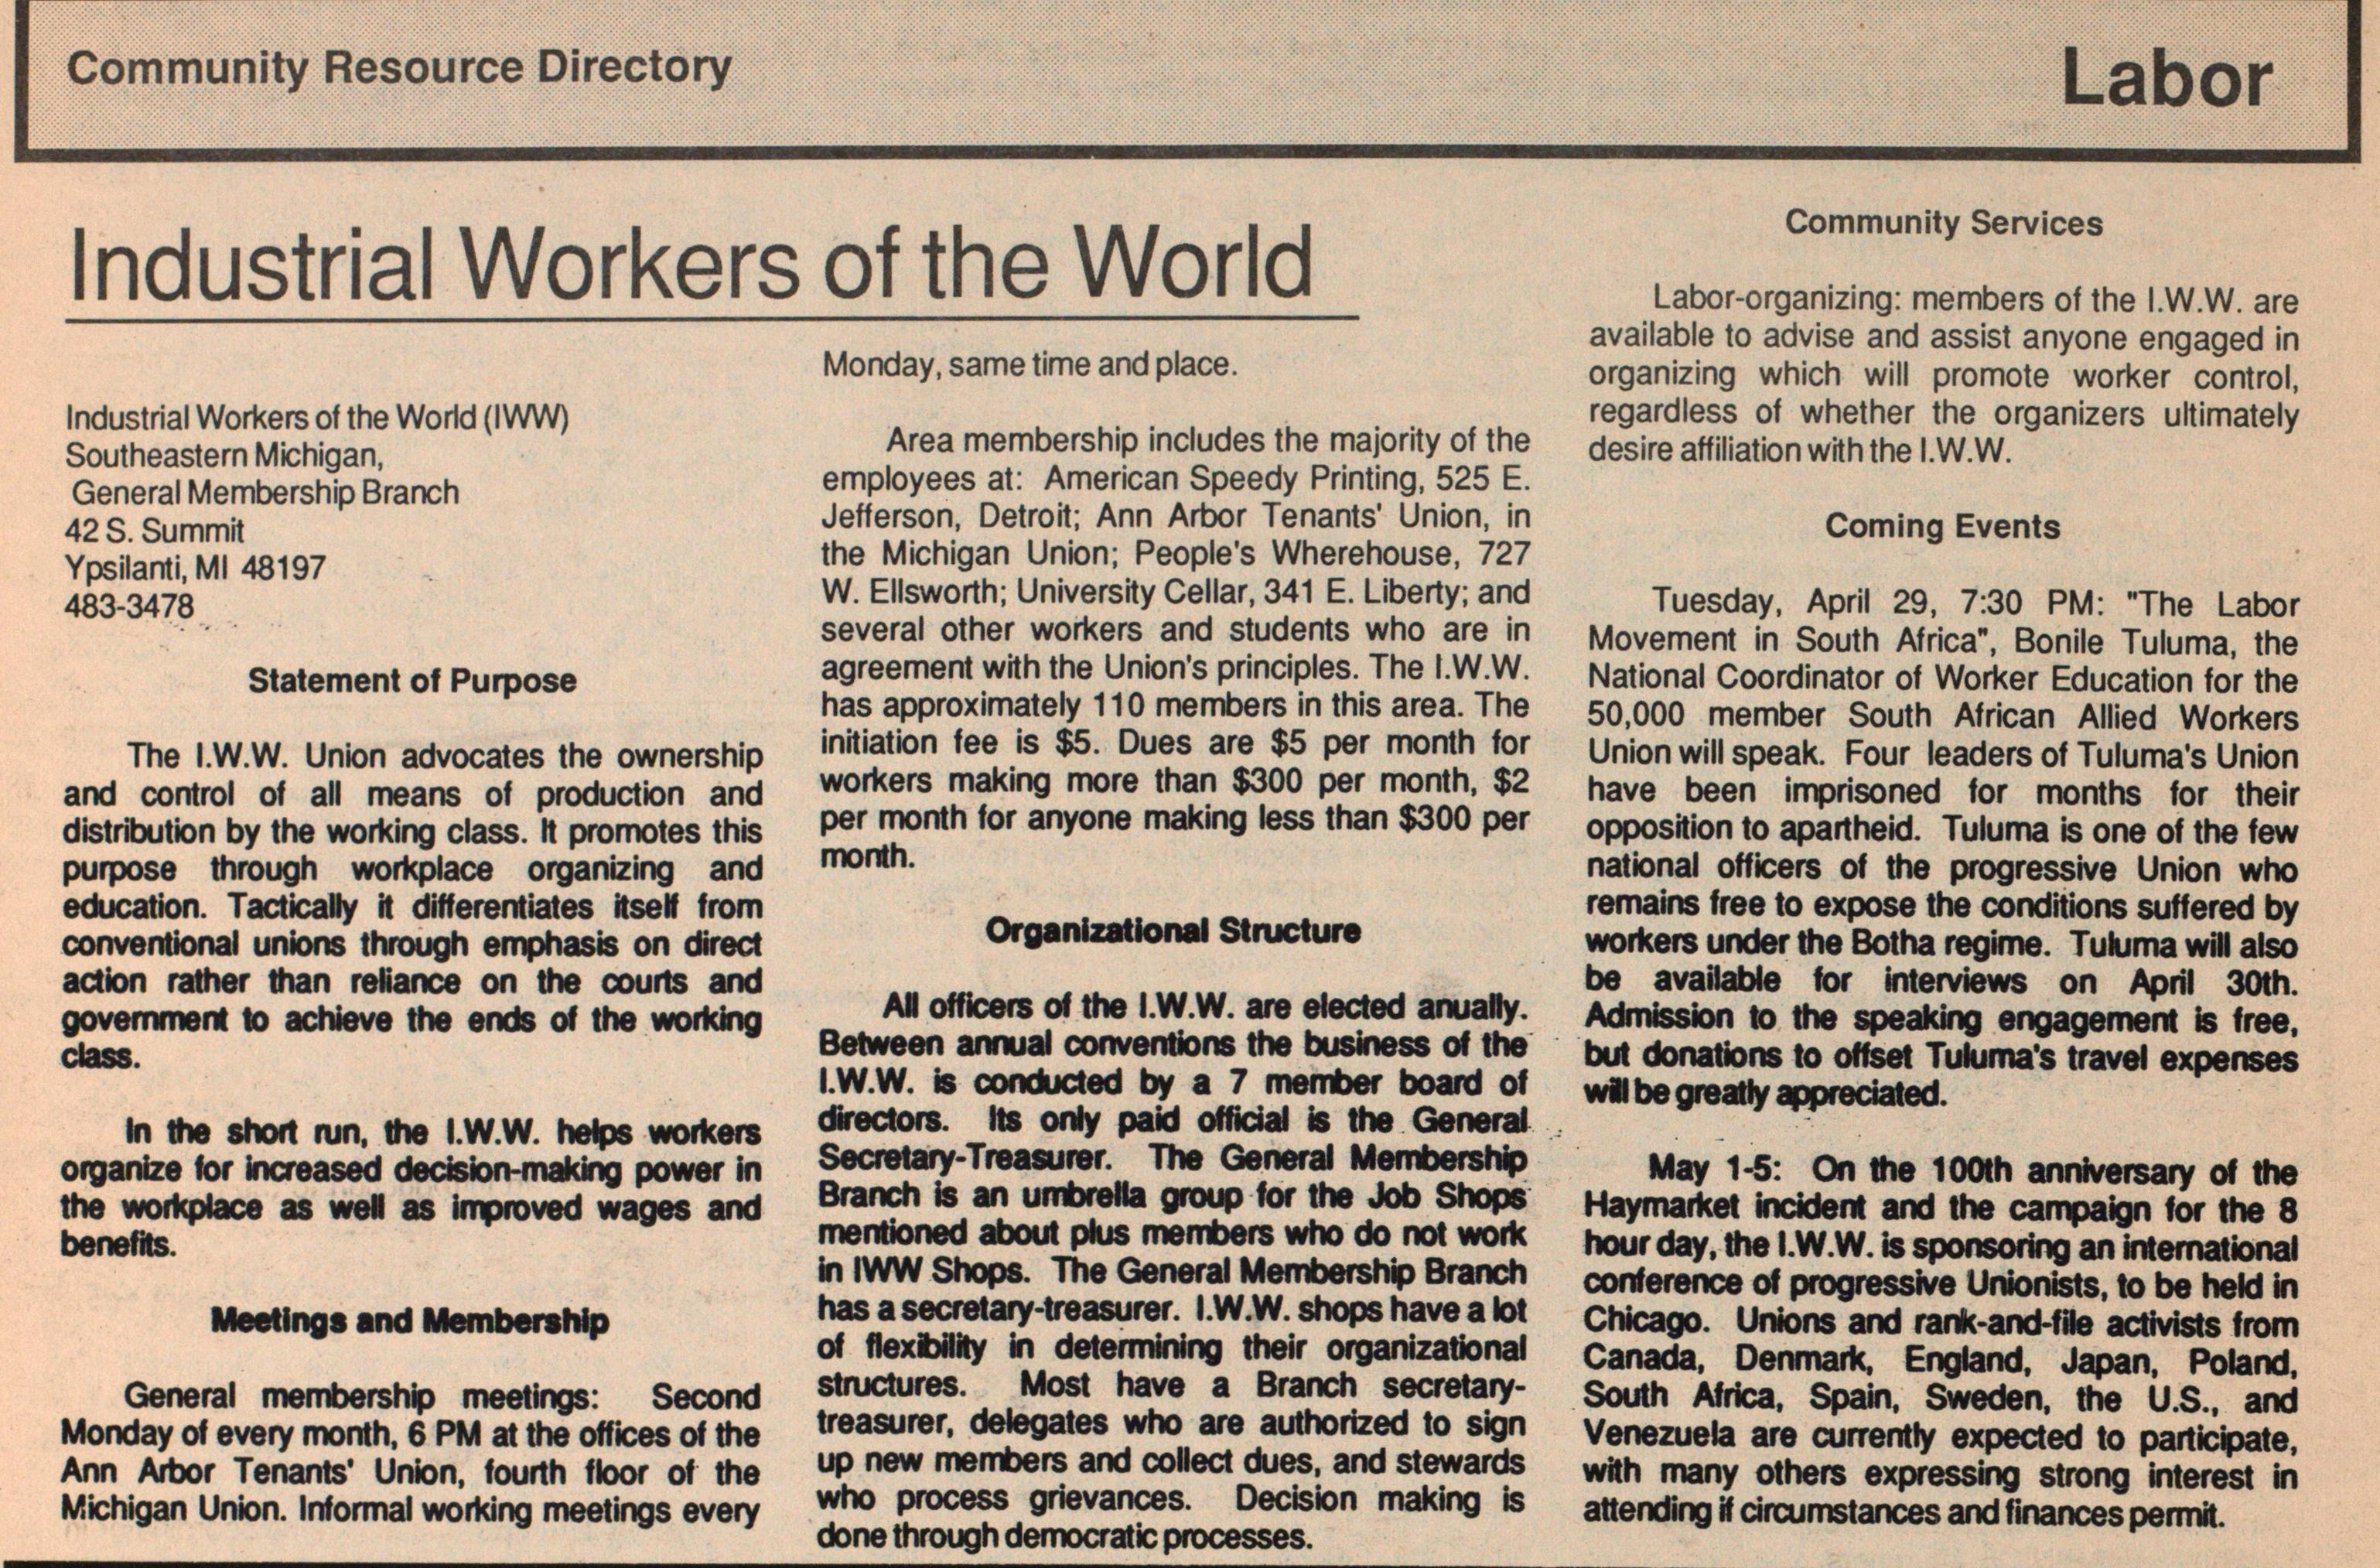 Industrial Workers Of The World image